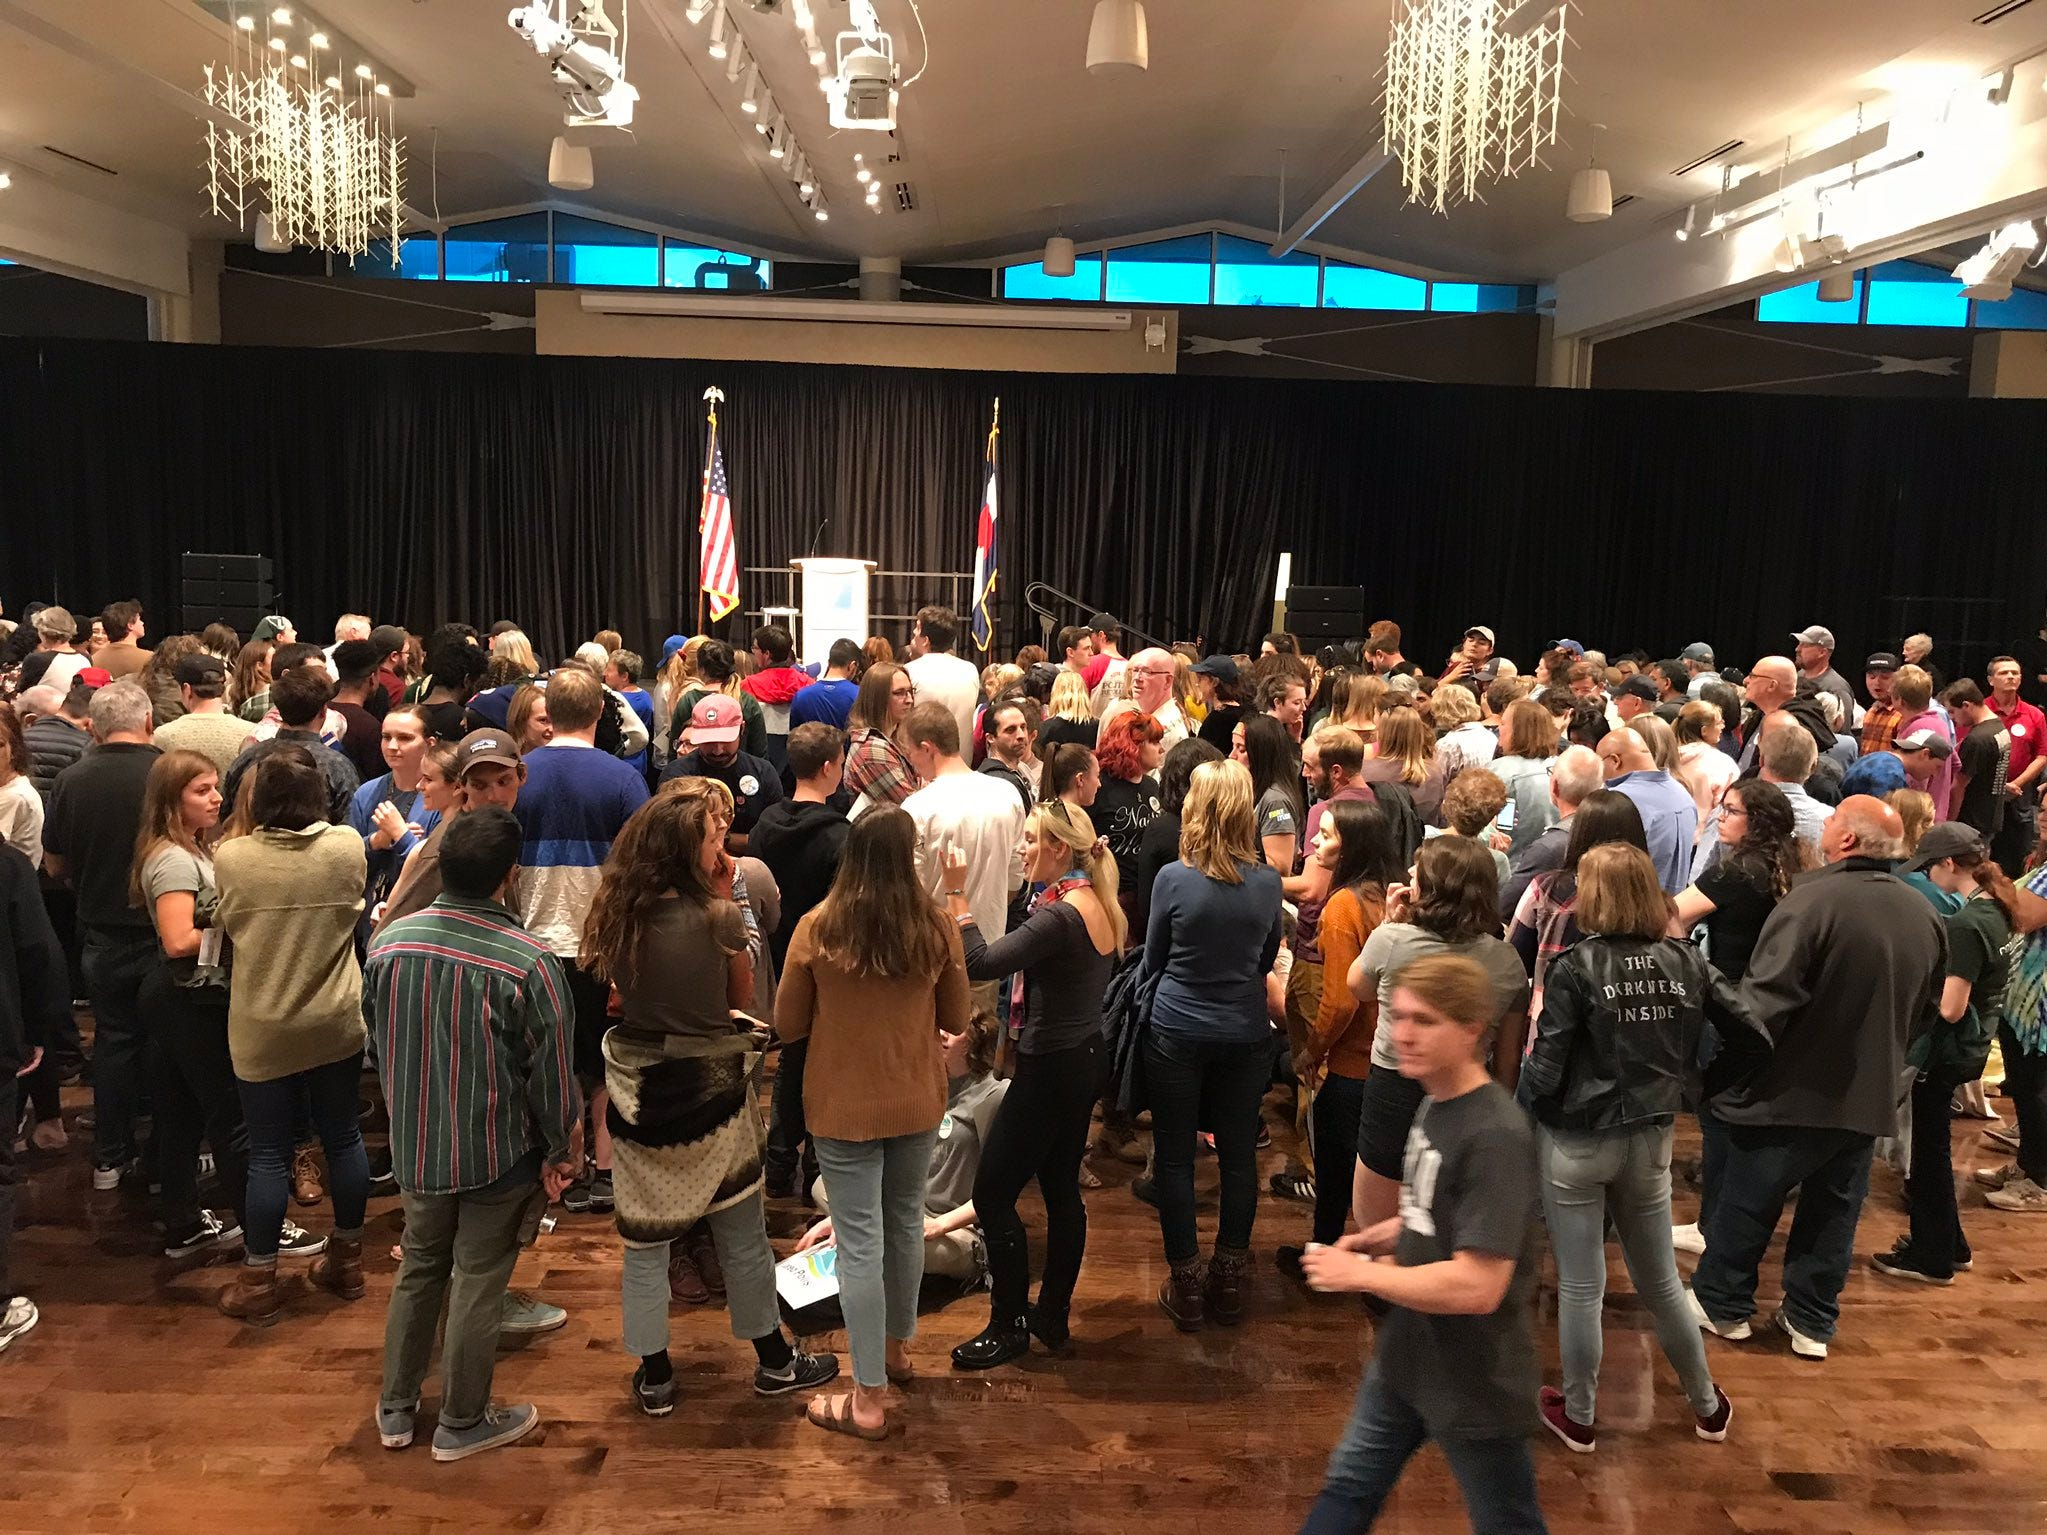 The Lory Student Center Ballroom begins to fill up Wednesday, 45 minutes prior to the start of a rally featuring U.S. Sen. Bernie Sanders, governor candidate Rep. Jared Polis, congressional candidate Joe Neguse and Sen. Michael Bennet.